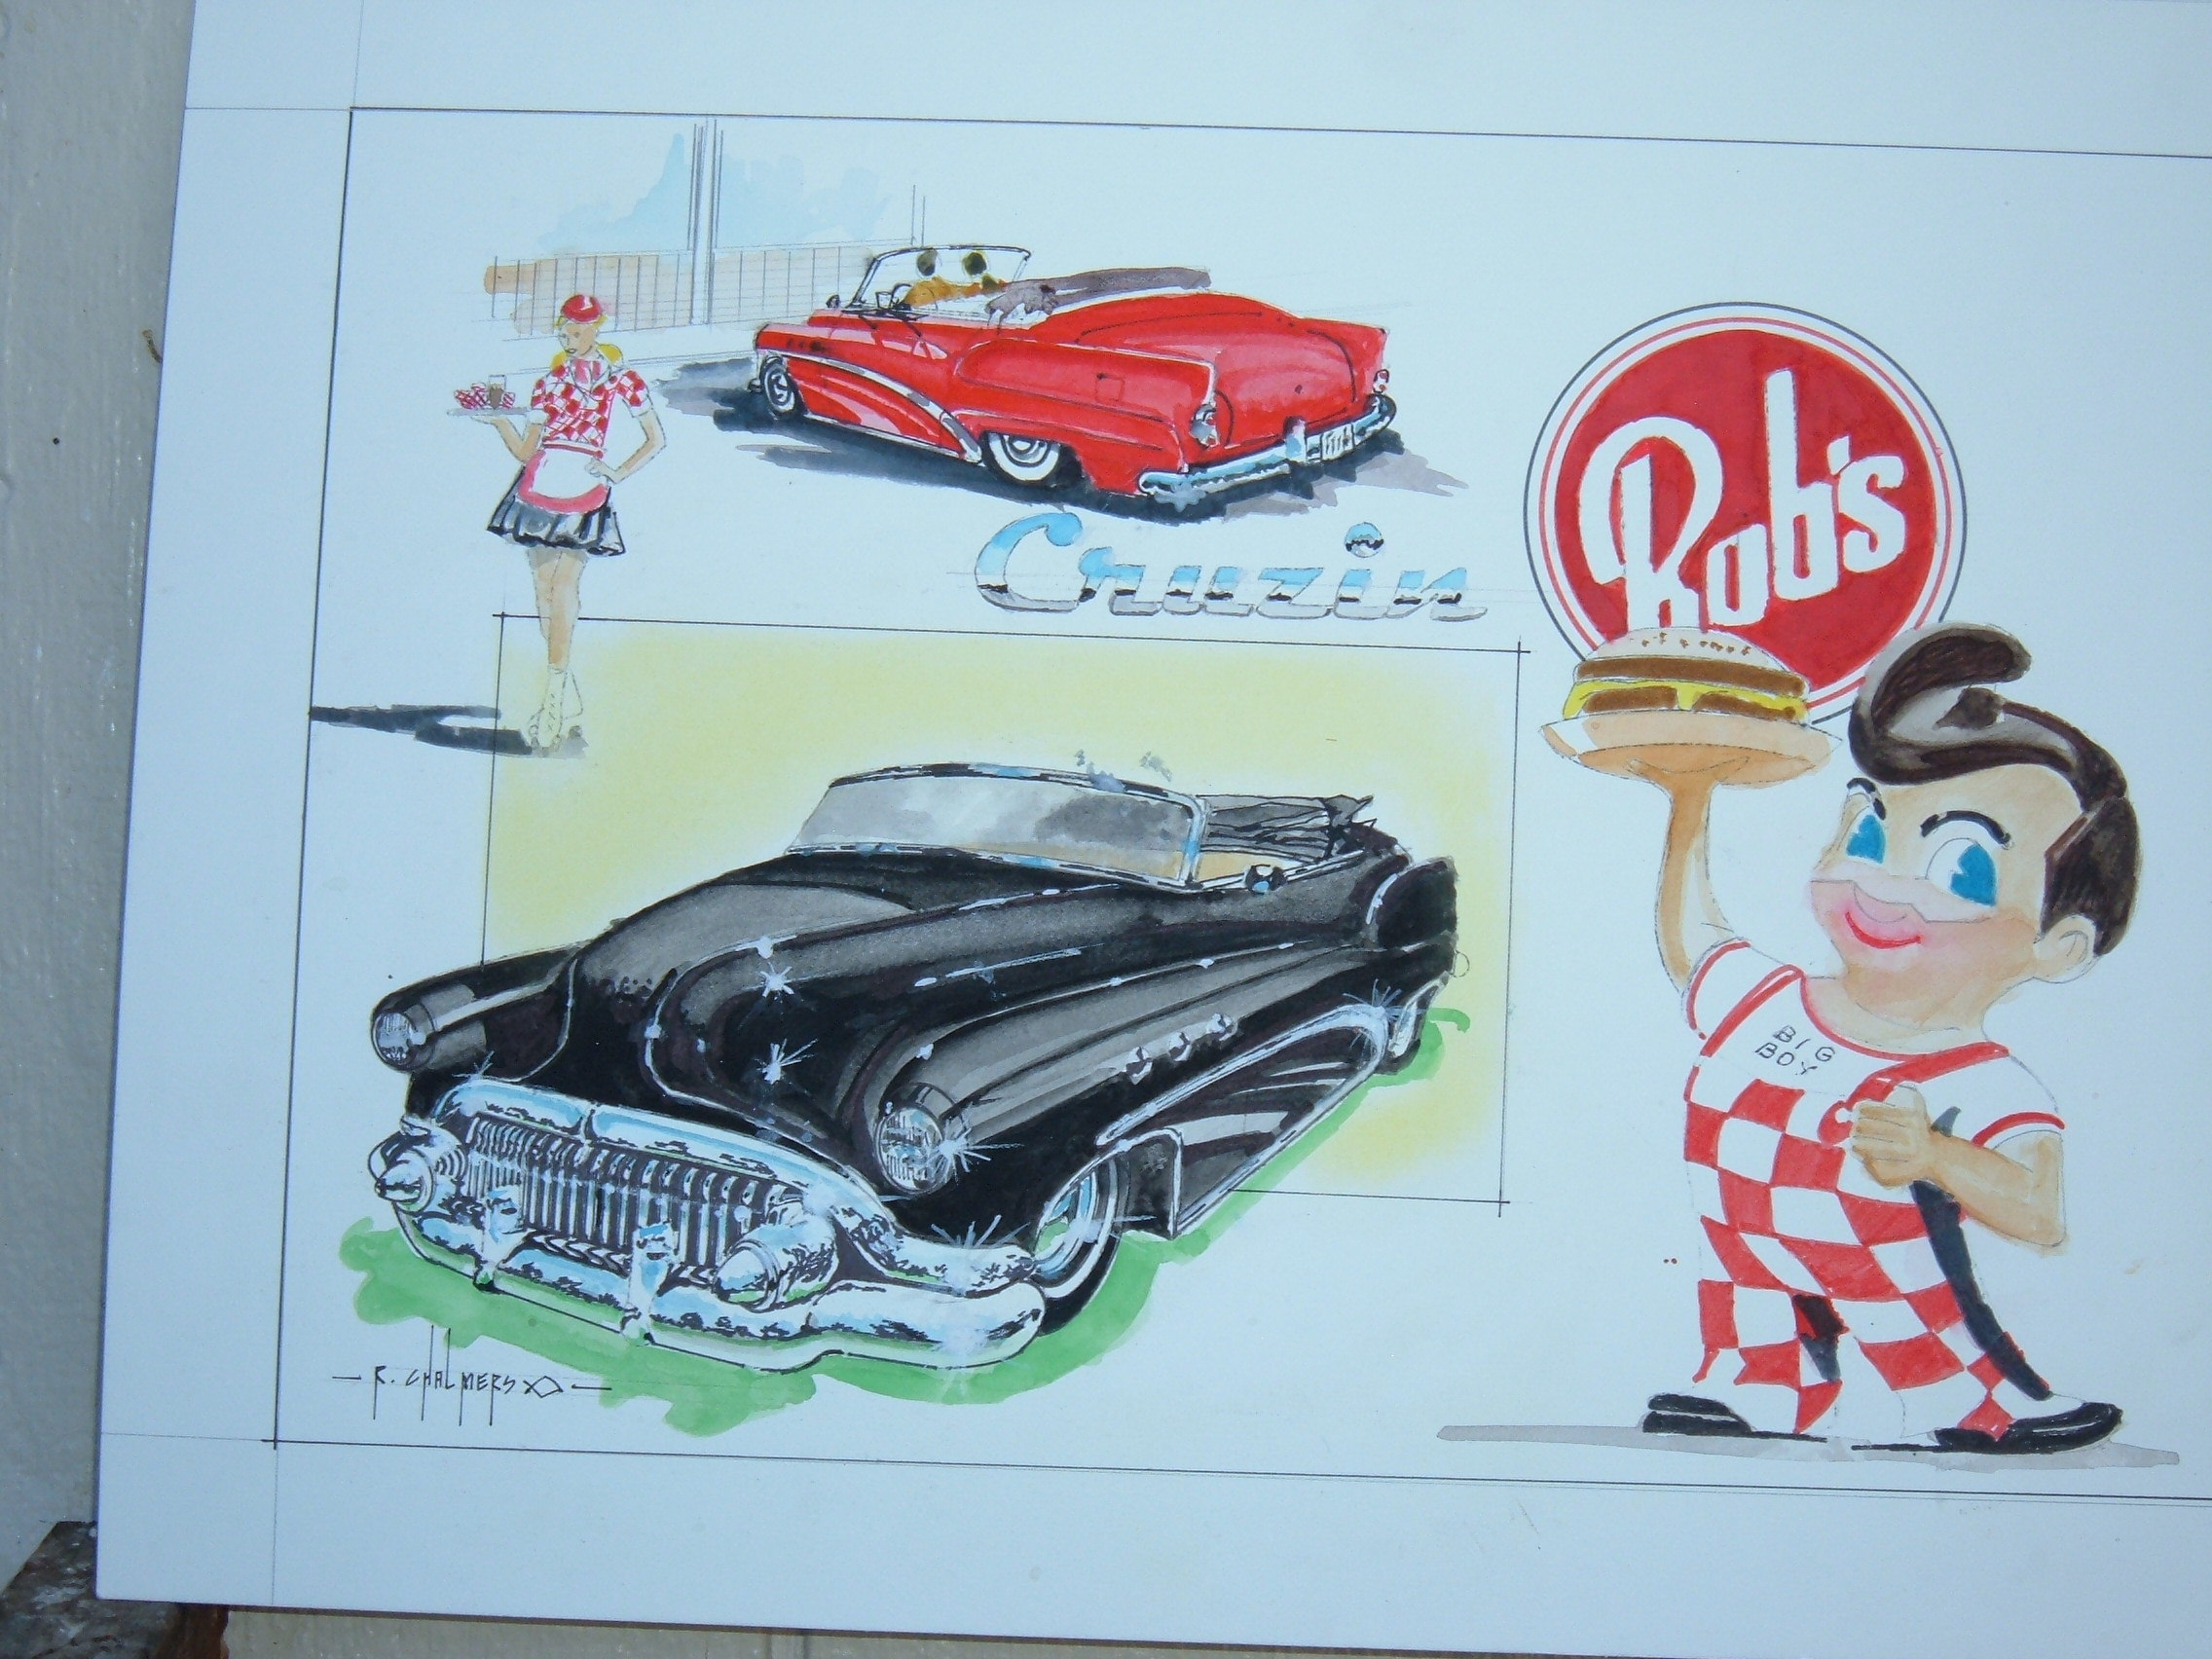 Click image for larger version  Name:Ron's Art 001.jpg Views:202 Size:723.8 KB ID:54124